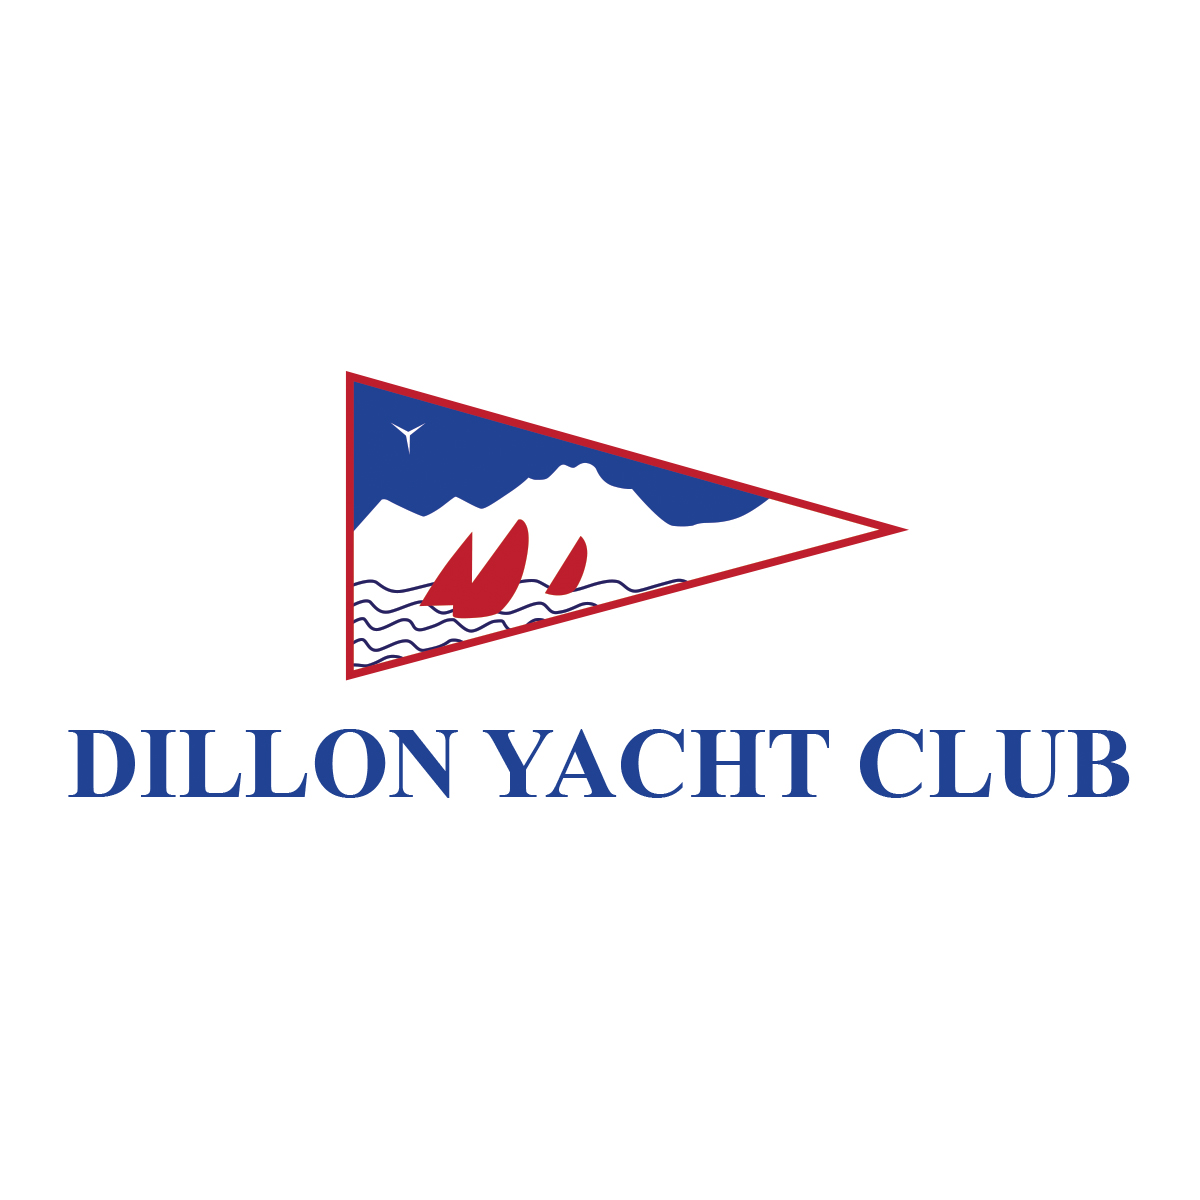 DYC - LOGO ADDED TO NON-PROGRAM ITEM